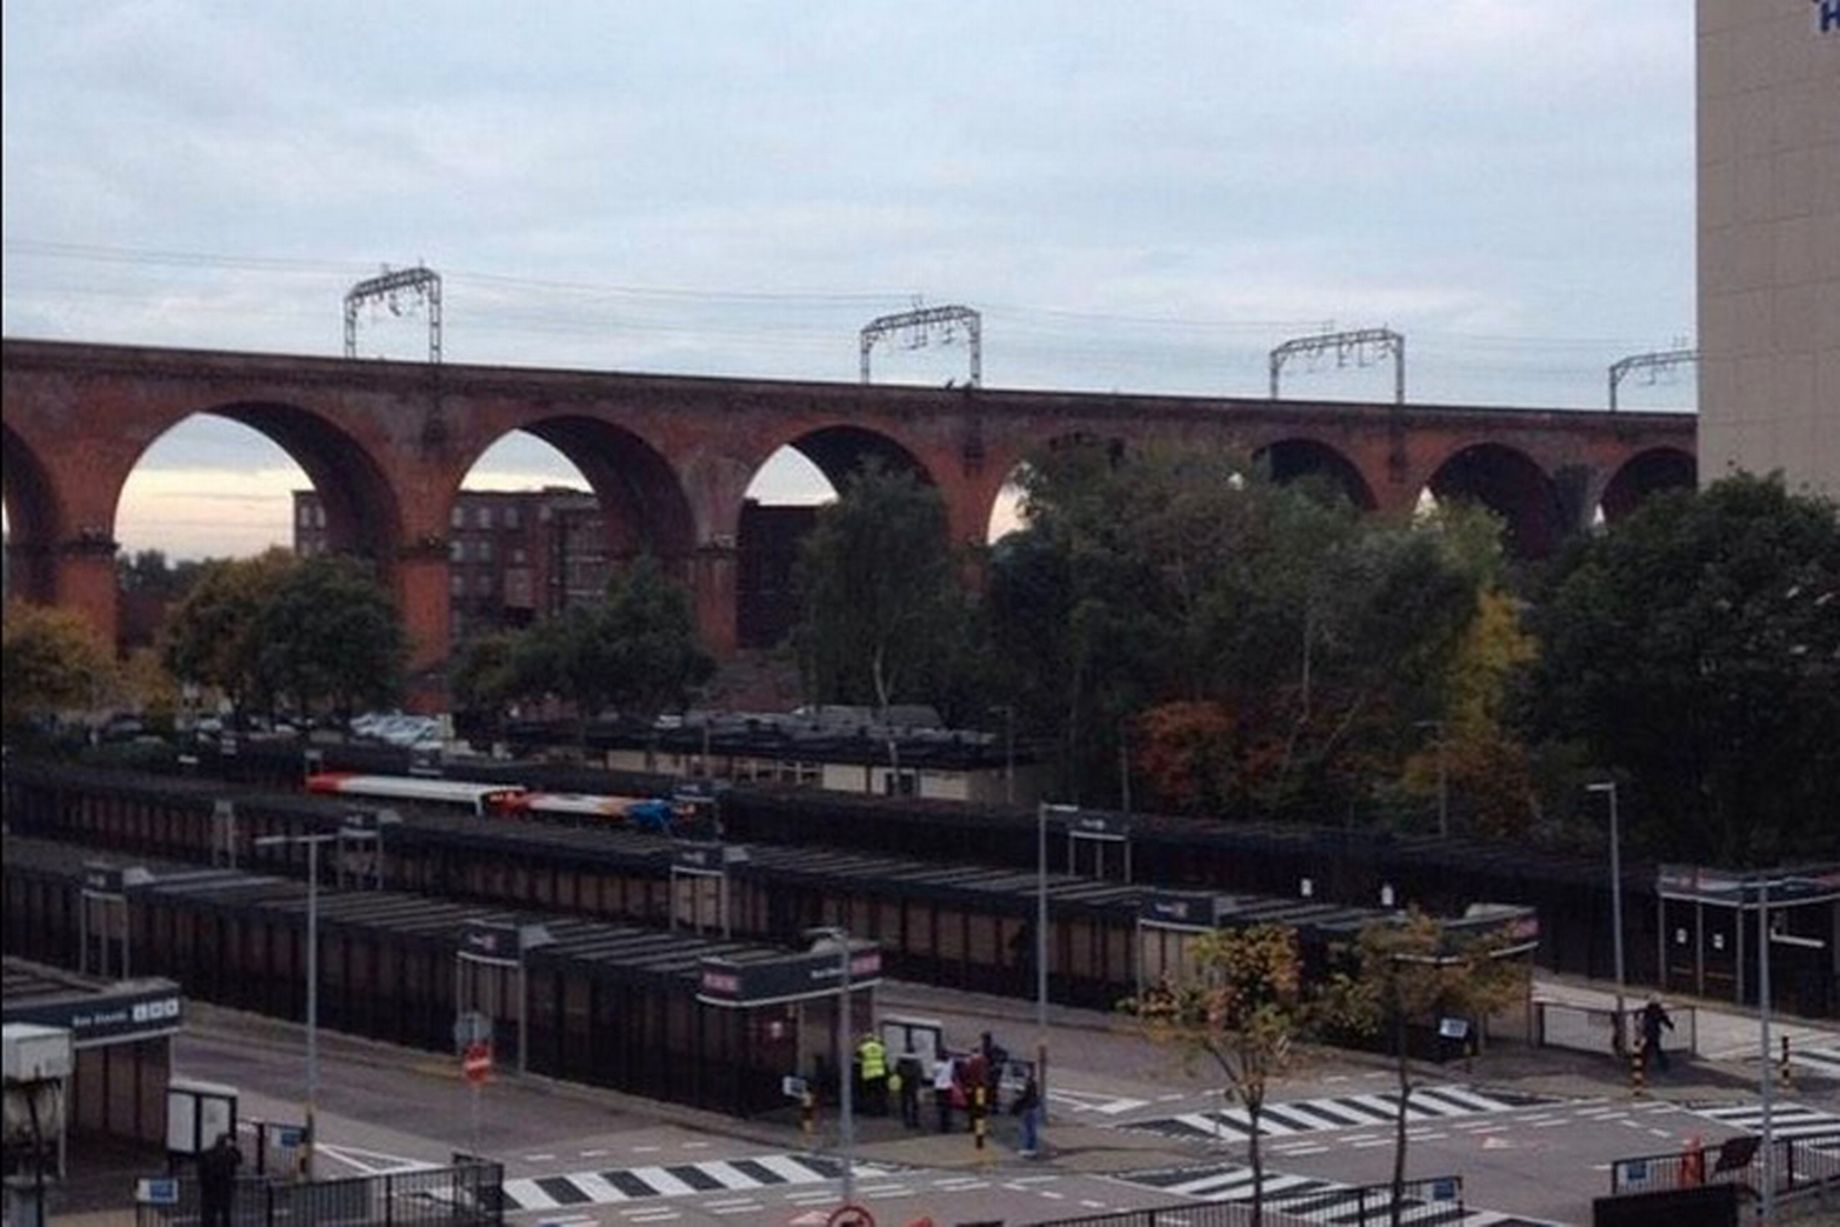 Trains-halted-through-Stockport-after-woman-seen-on-viaduct 2